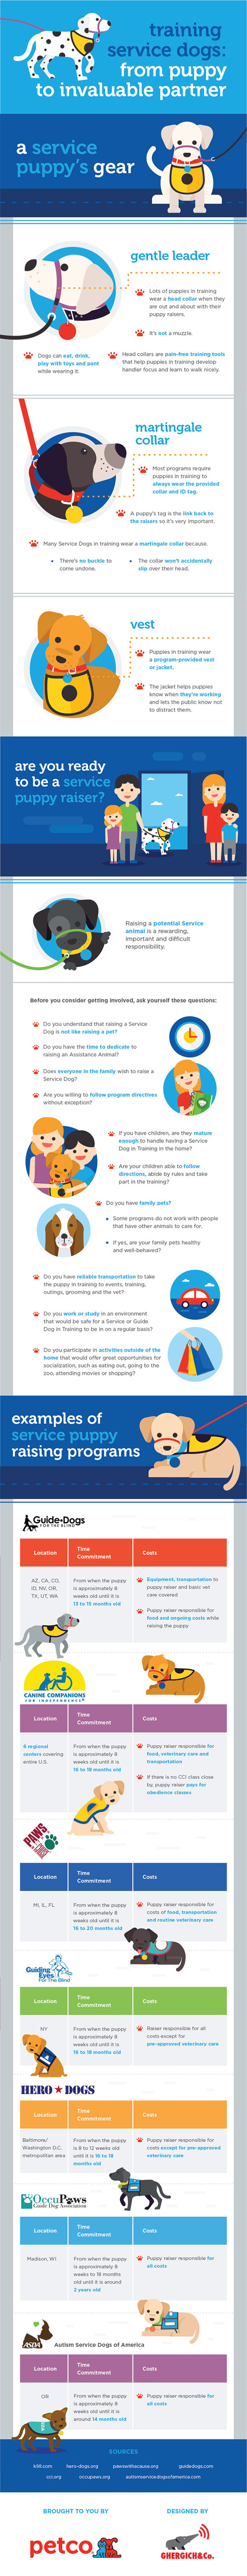 Service Dog Infographic